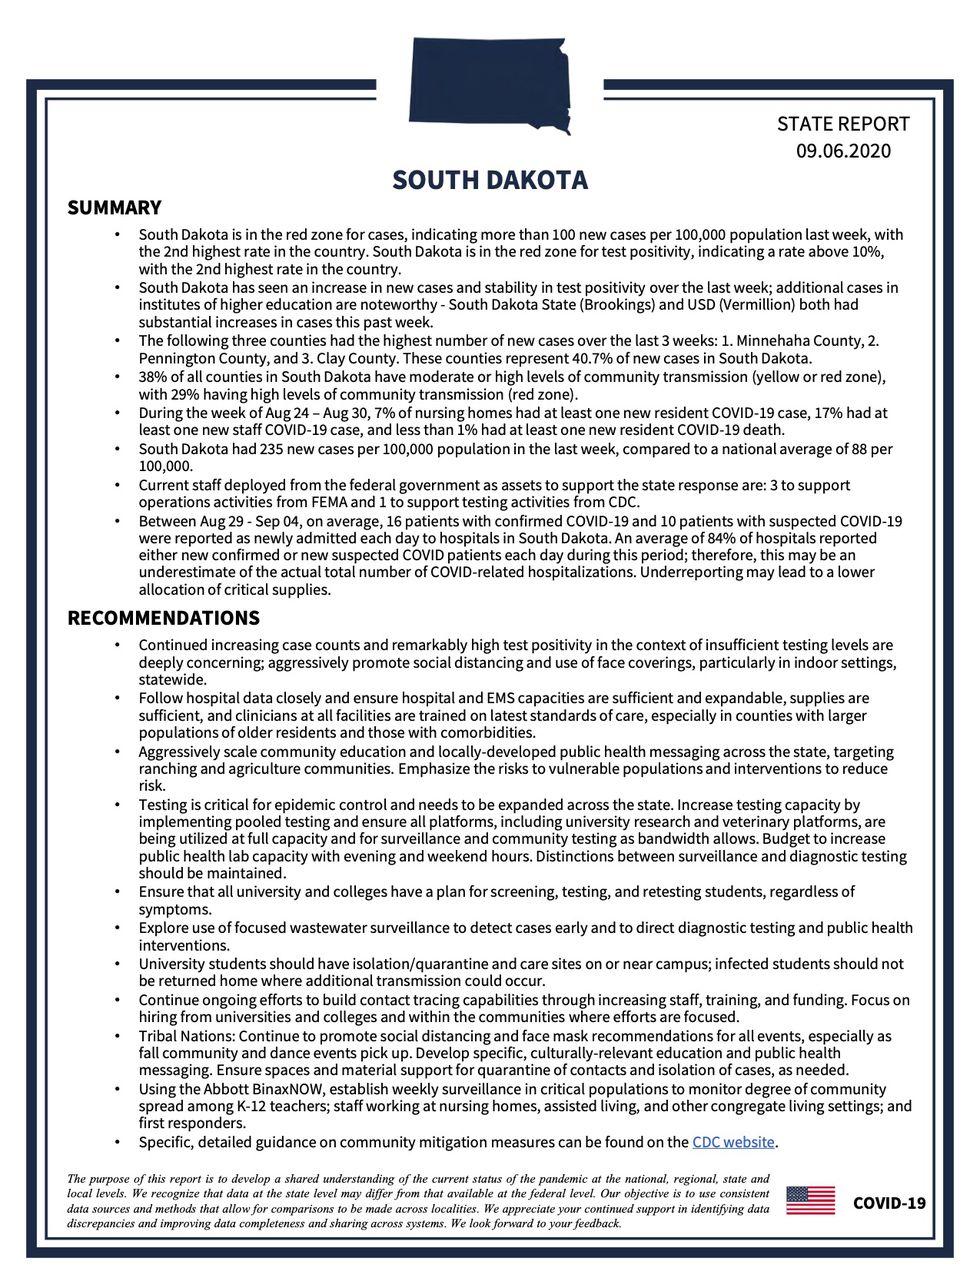 Summary and recommendations for South Dakota in the White House Coronavirus Task Force report, obtained by ABC News